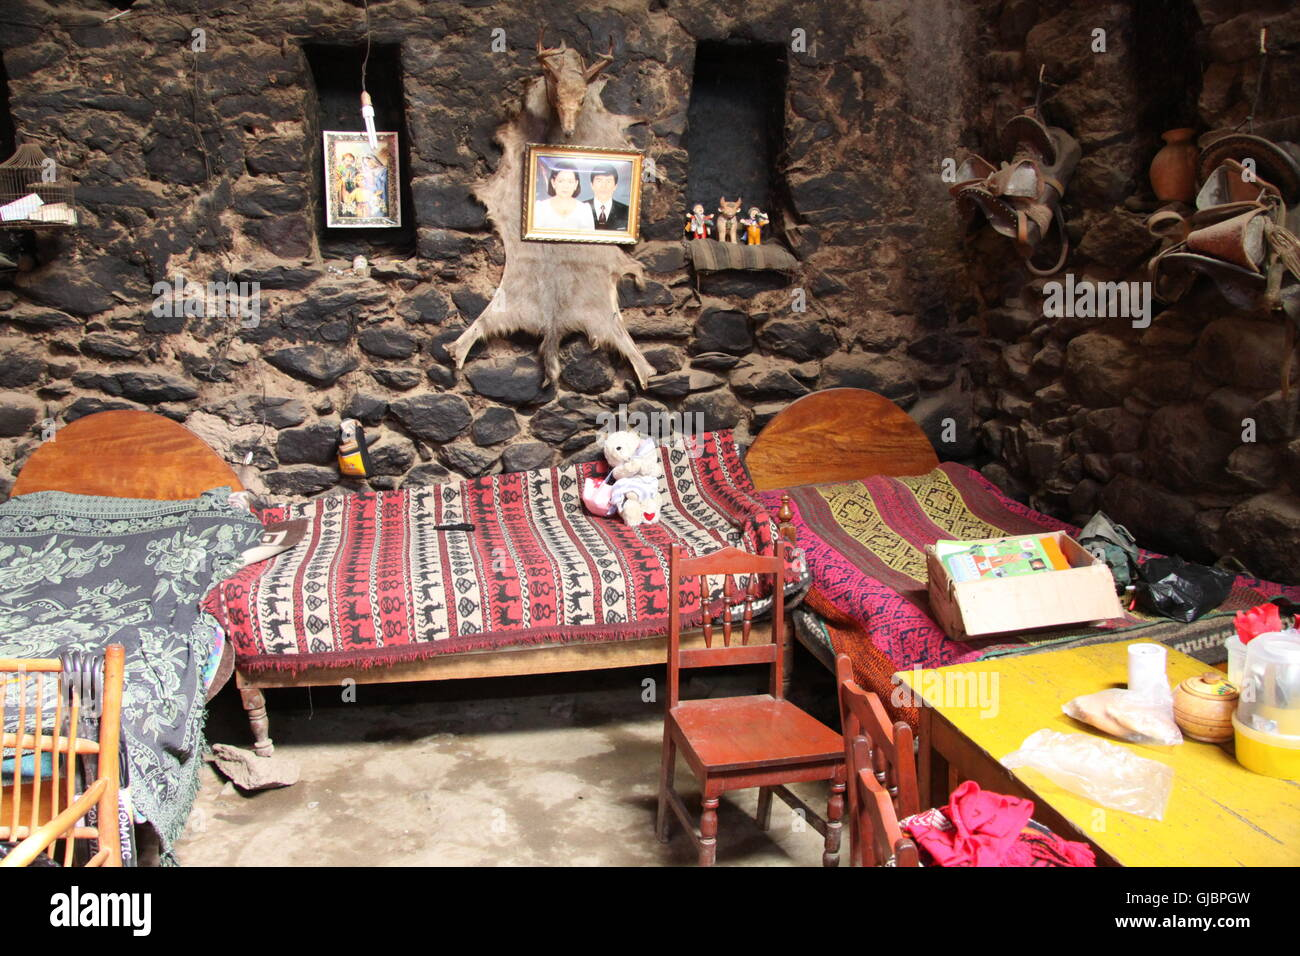 Traditional Peruvian primitive dwelling in Urubamba, with dried mud floor, and colourful bedding and religious artefacts - Stock Image